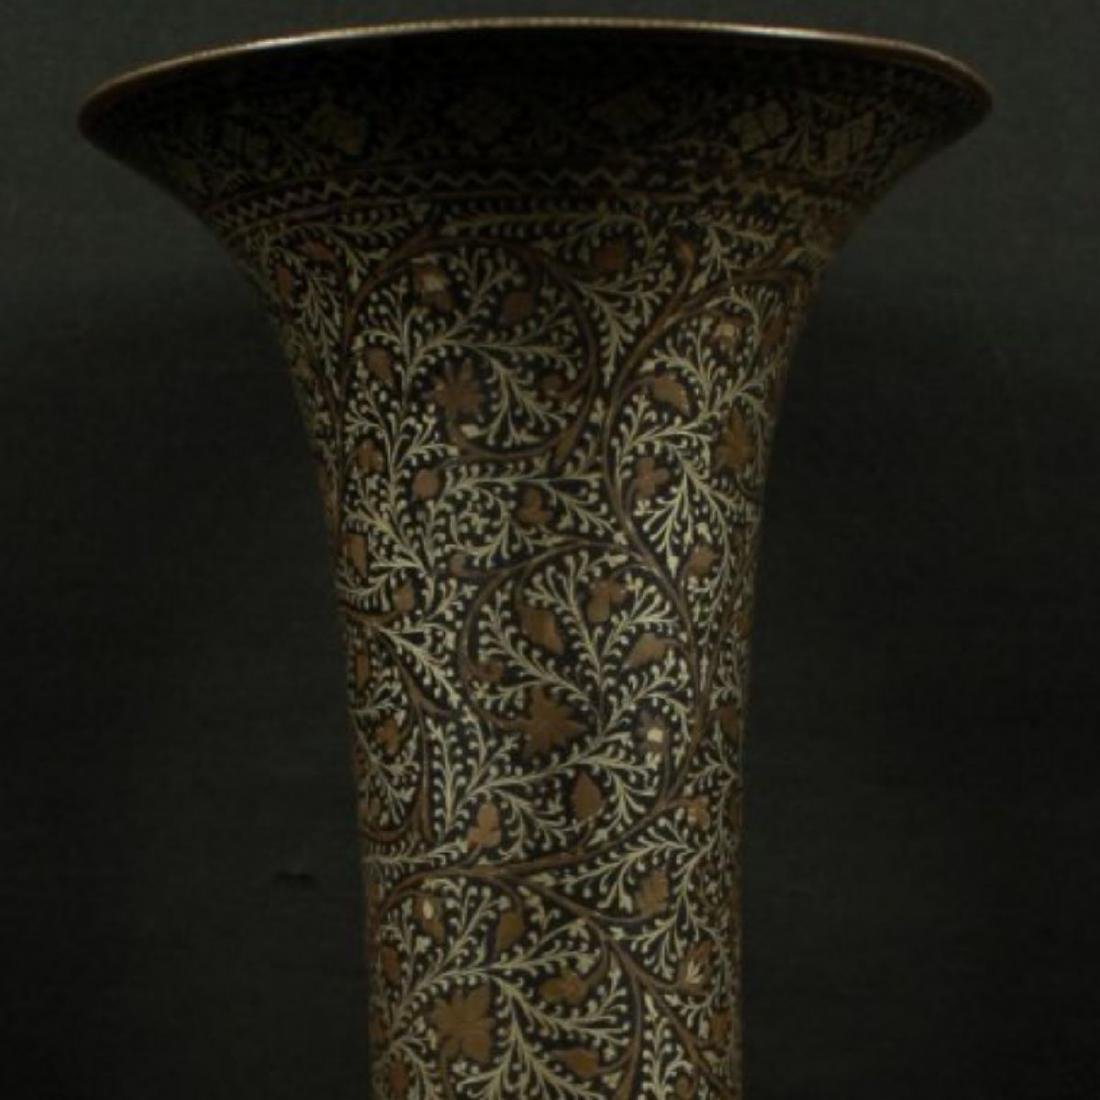 INLAID METAL VASE